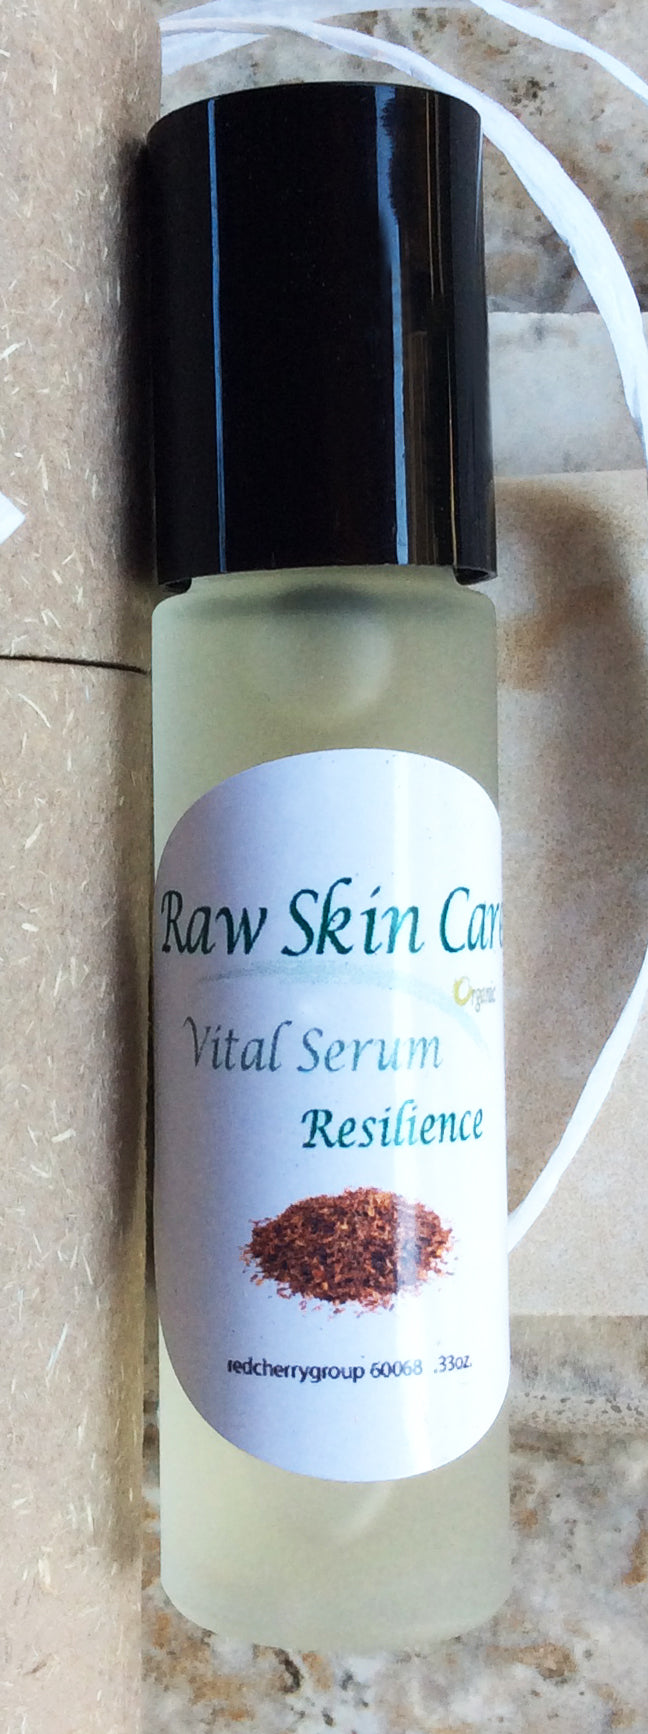 Vital Resilience Super Anti-inflammation Serum with Benefits .33oz.